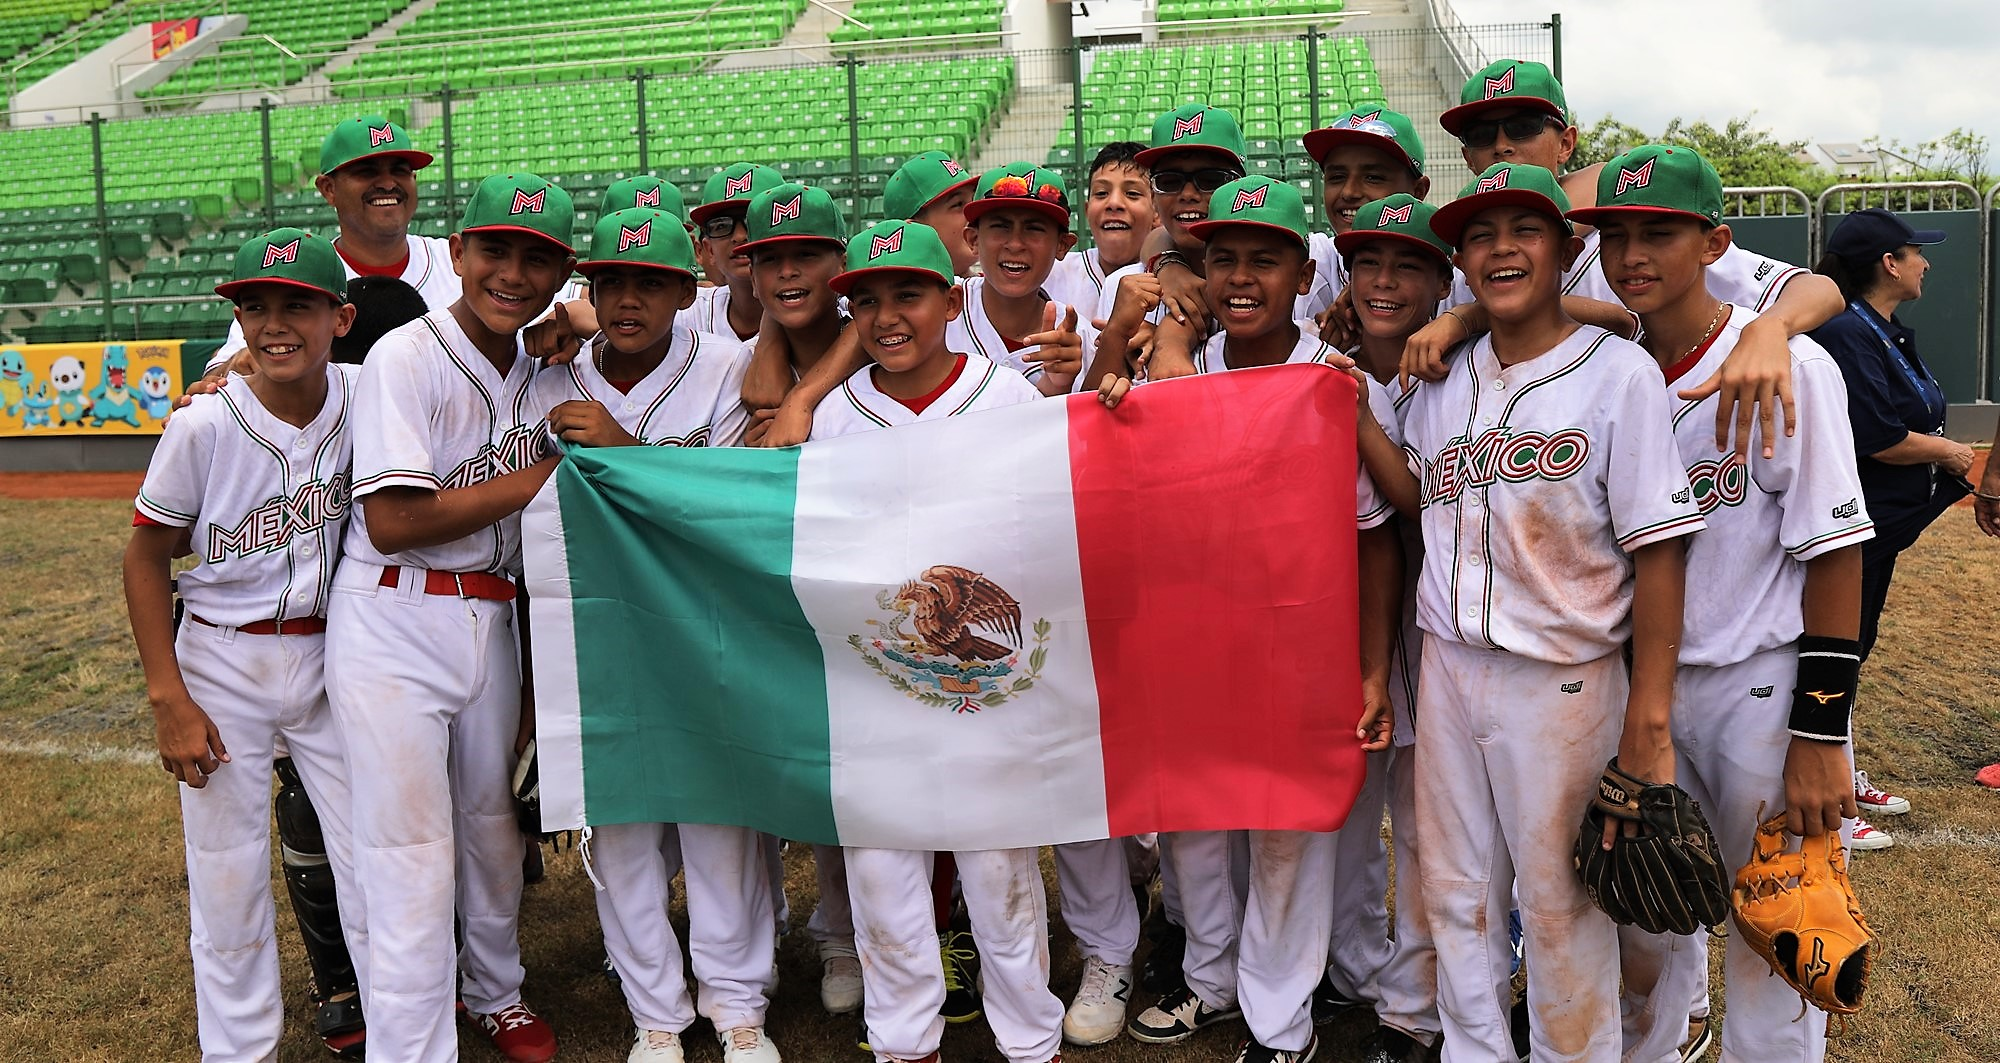 Mexico's players showing National pride